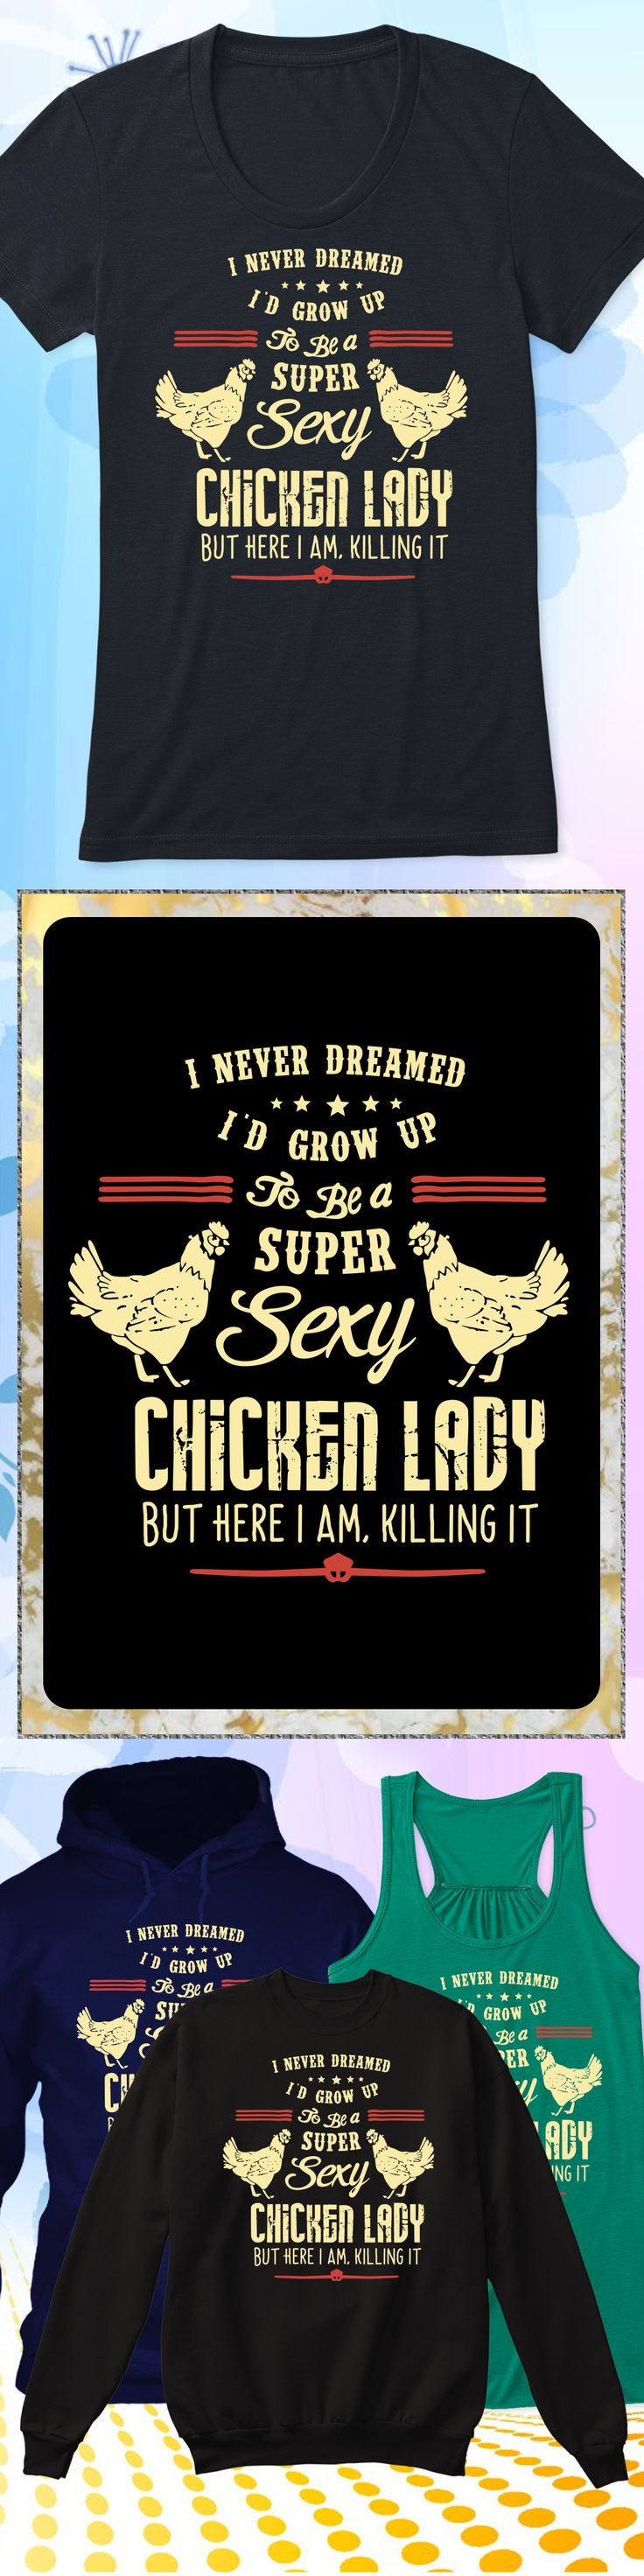 Sexy Chicken Lady - Limited edition. Order 2 or more for friends/family & save on shipping! Makes a great gift!